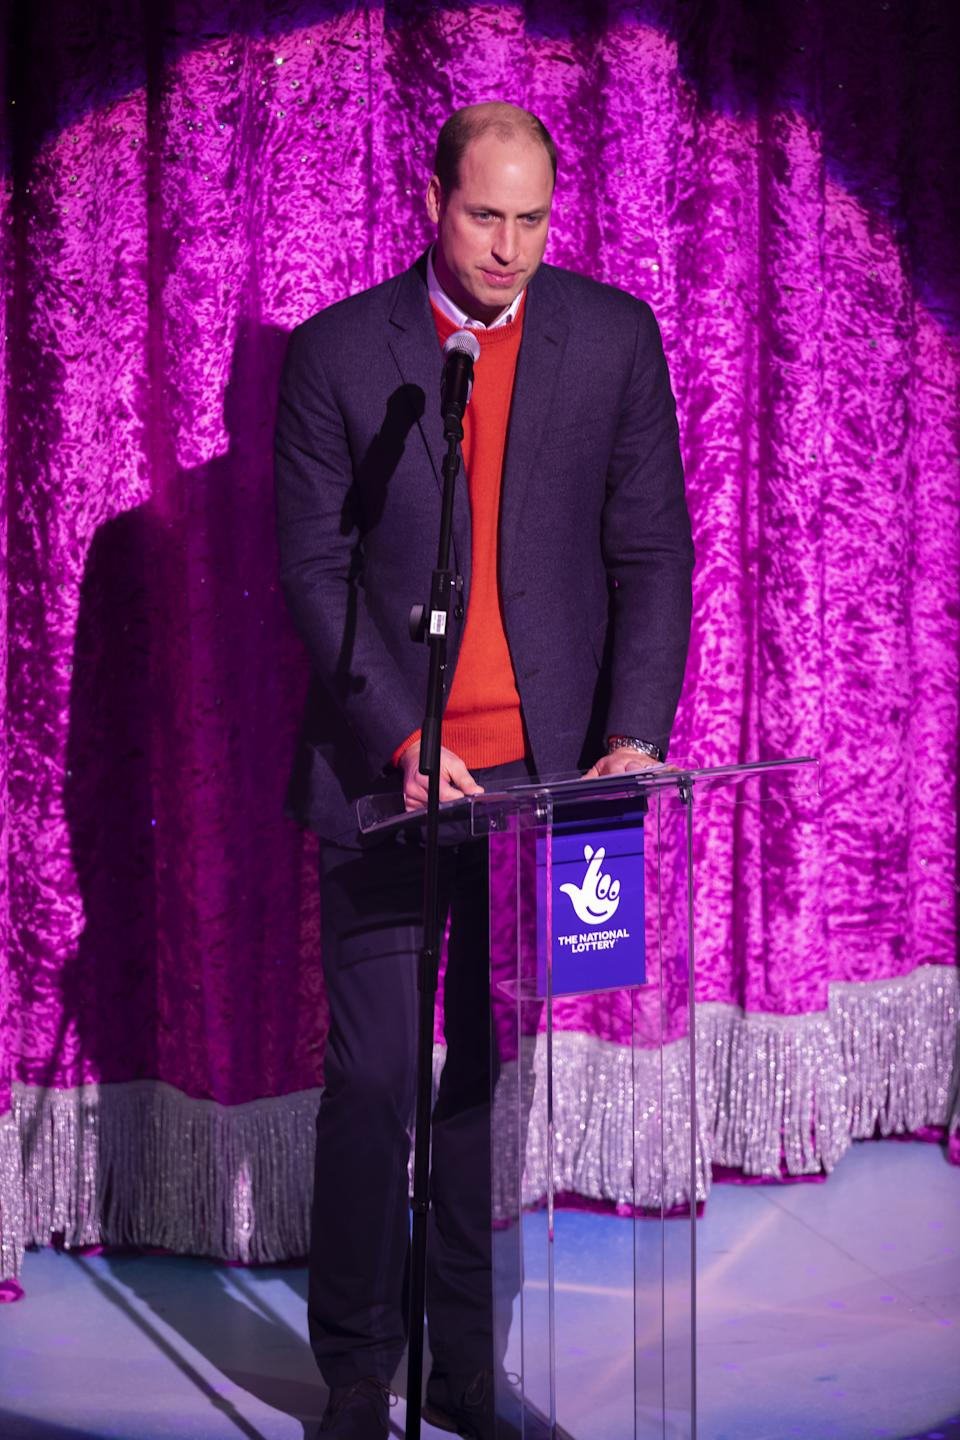 The Duke of Cambridge gives a speech on stage as he attends a special pantomime performance at London's Palladium Theatre, hosted by The National Lottery, to thank key workers and their families for their efforts throughout the pandemic.